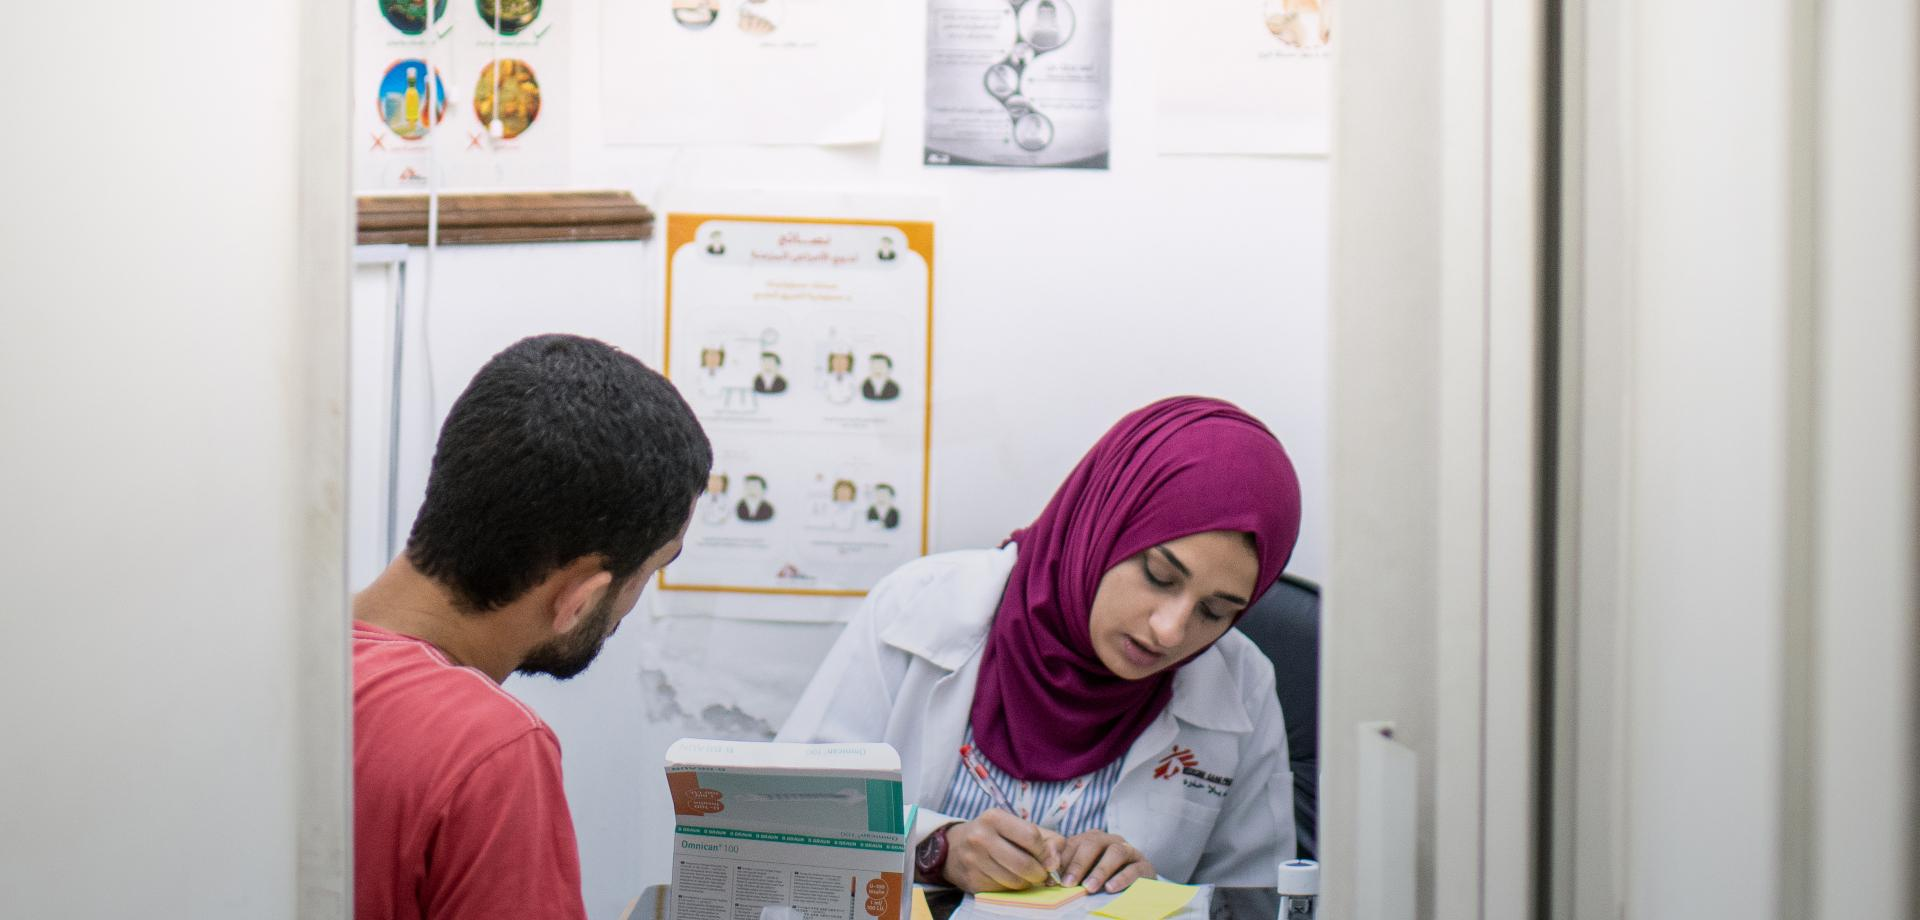 A Jordanian nurse and patient